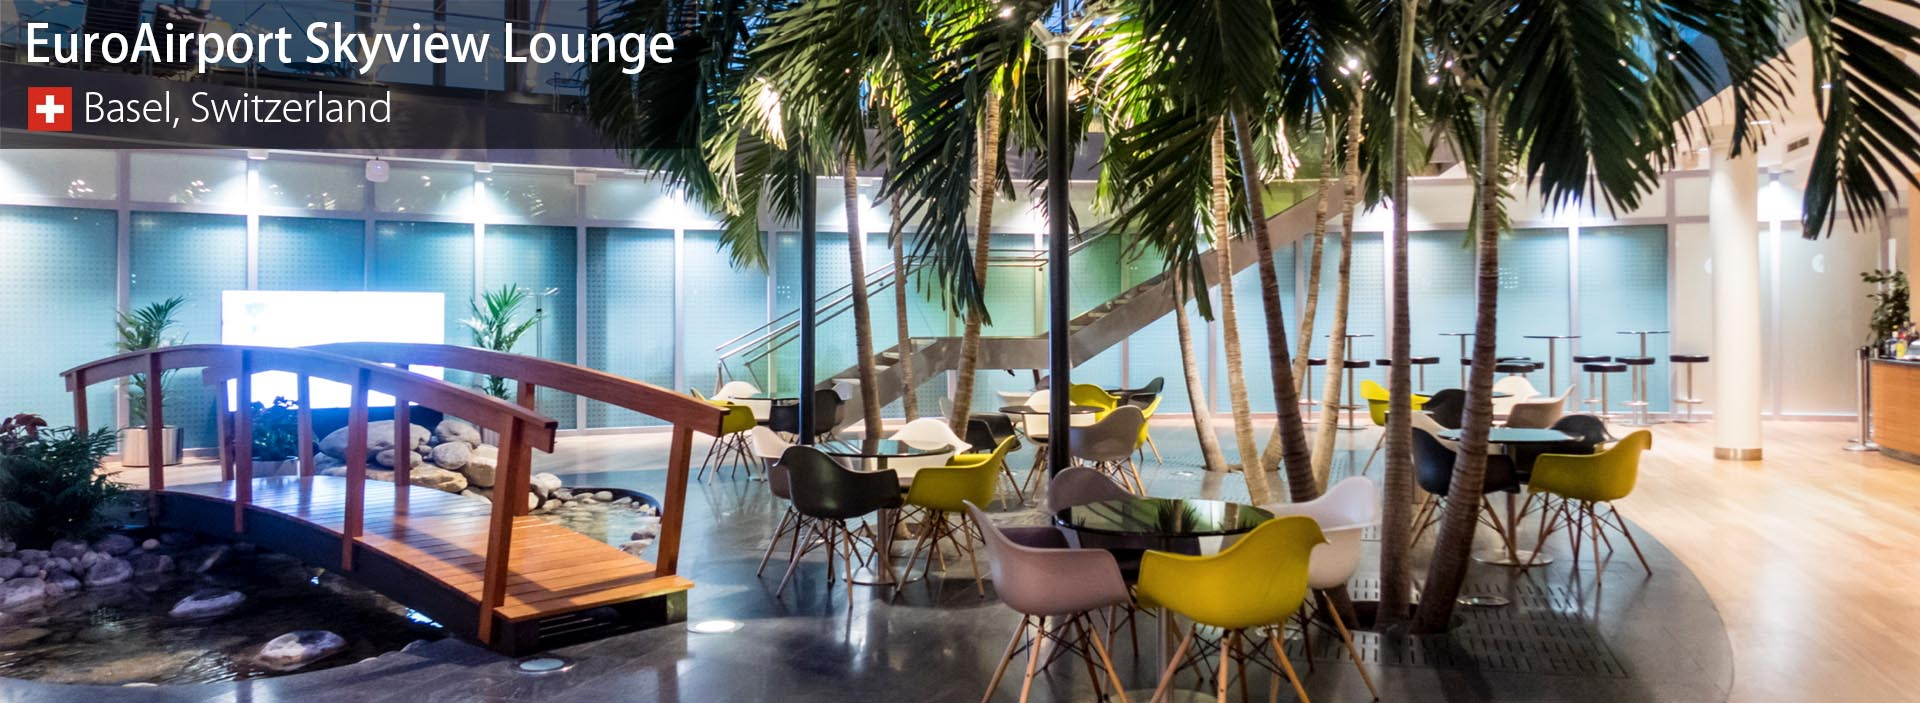 Review: EuroAirport Skyview Lounge at Basel Mulhouse